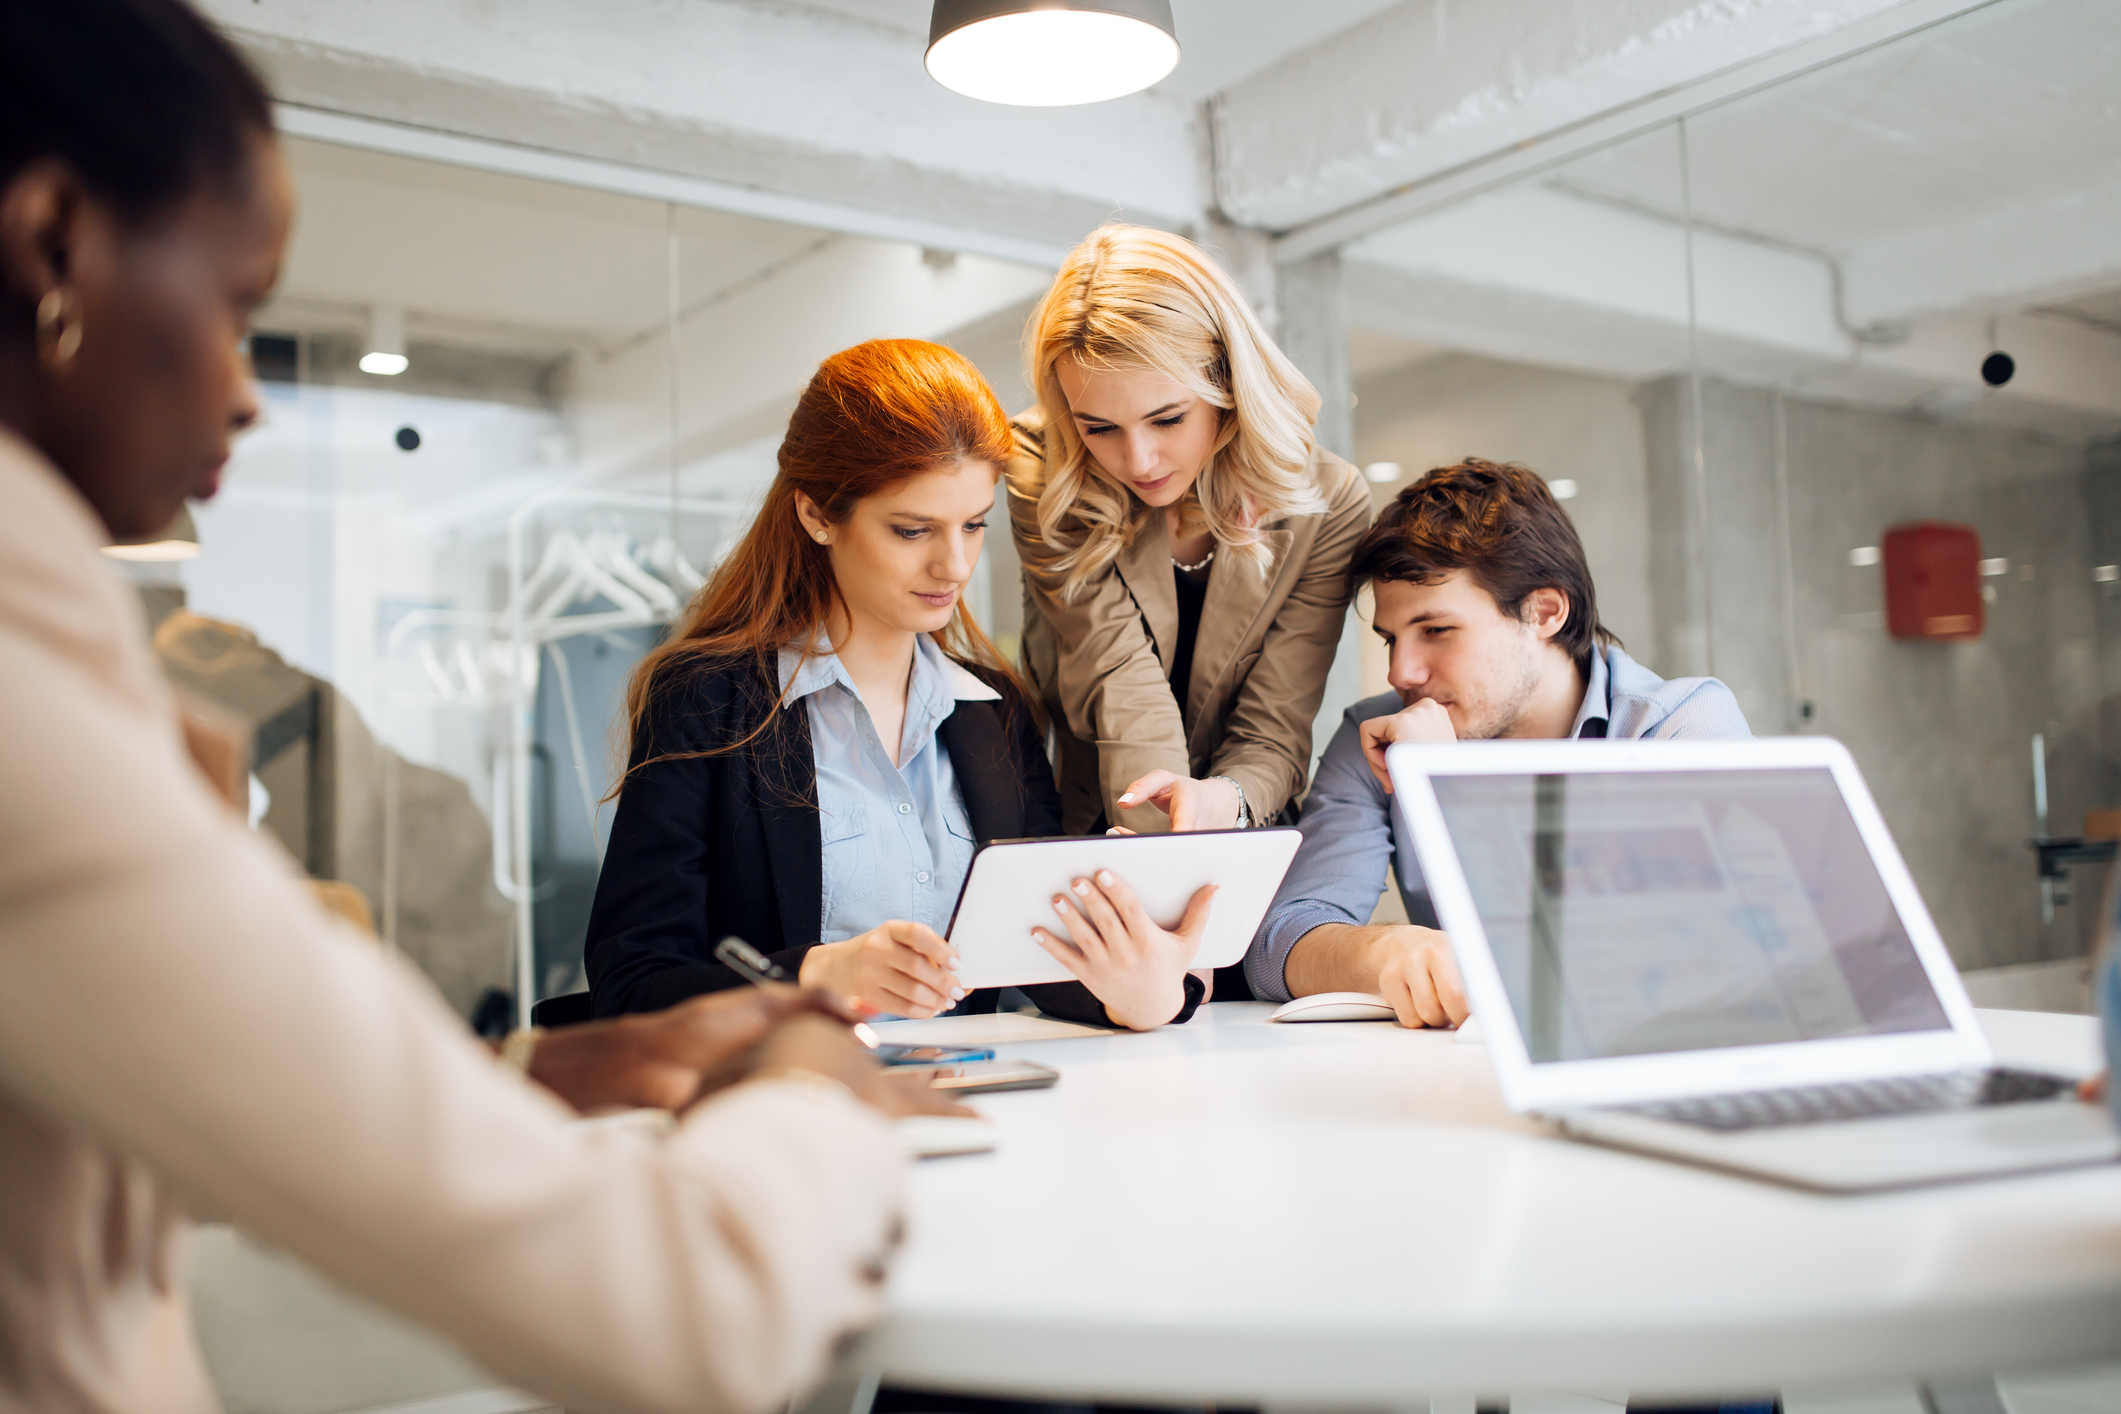 Scratch the surface and there might be surprises in the workplace. (Getty Images)